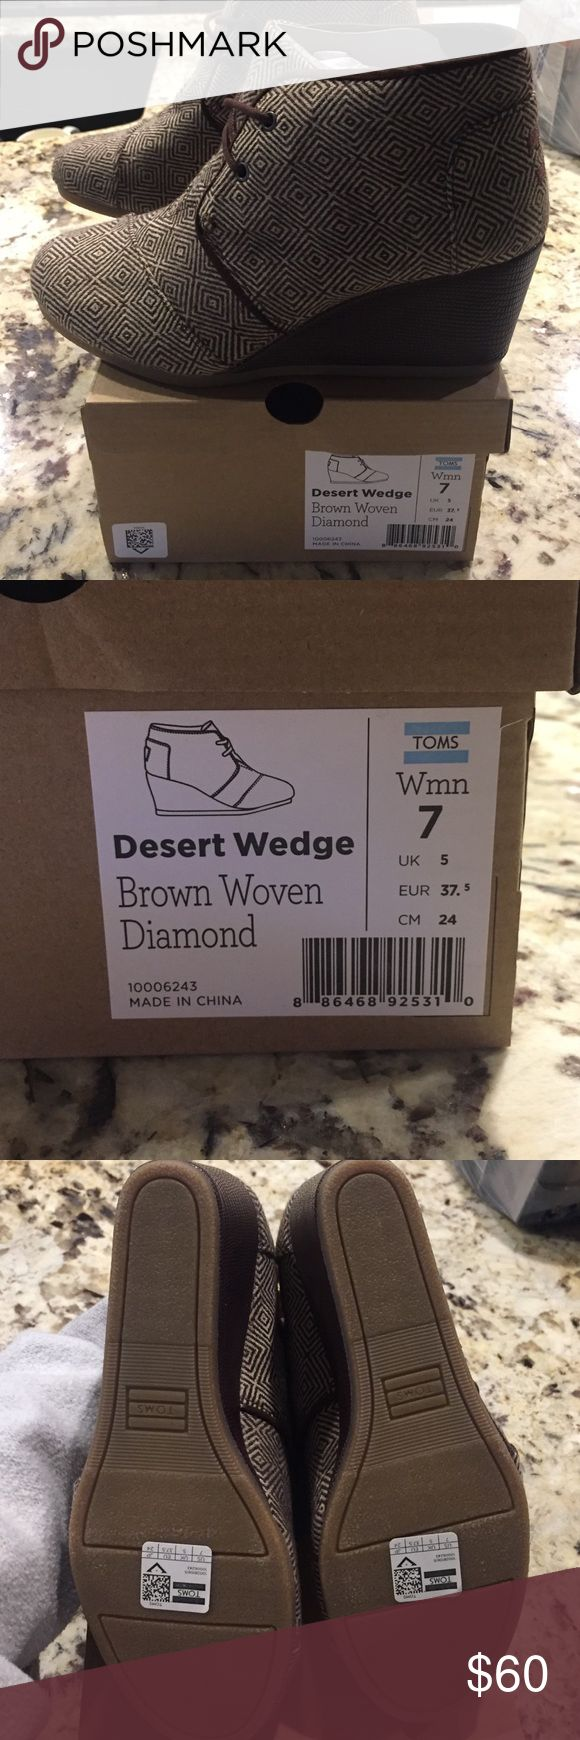 TOMS Desert Wedge Brown Woven Diamond NWOT. Never worn. I have these in other colors, and they are the most comfortable wedges! TOMS Shoes Wedges